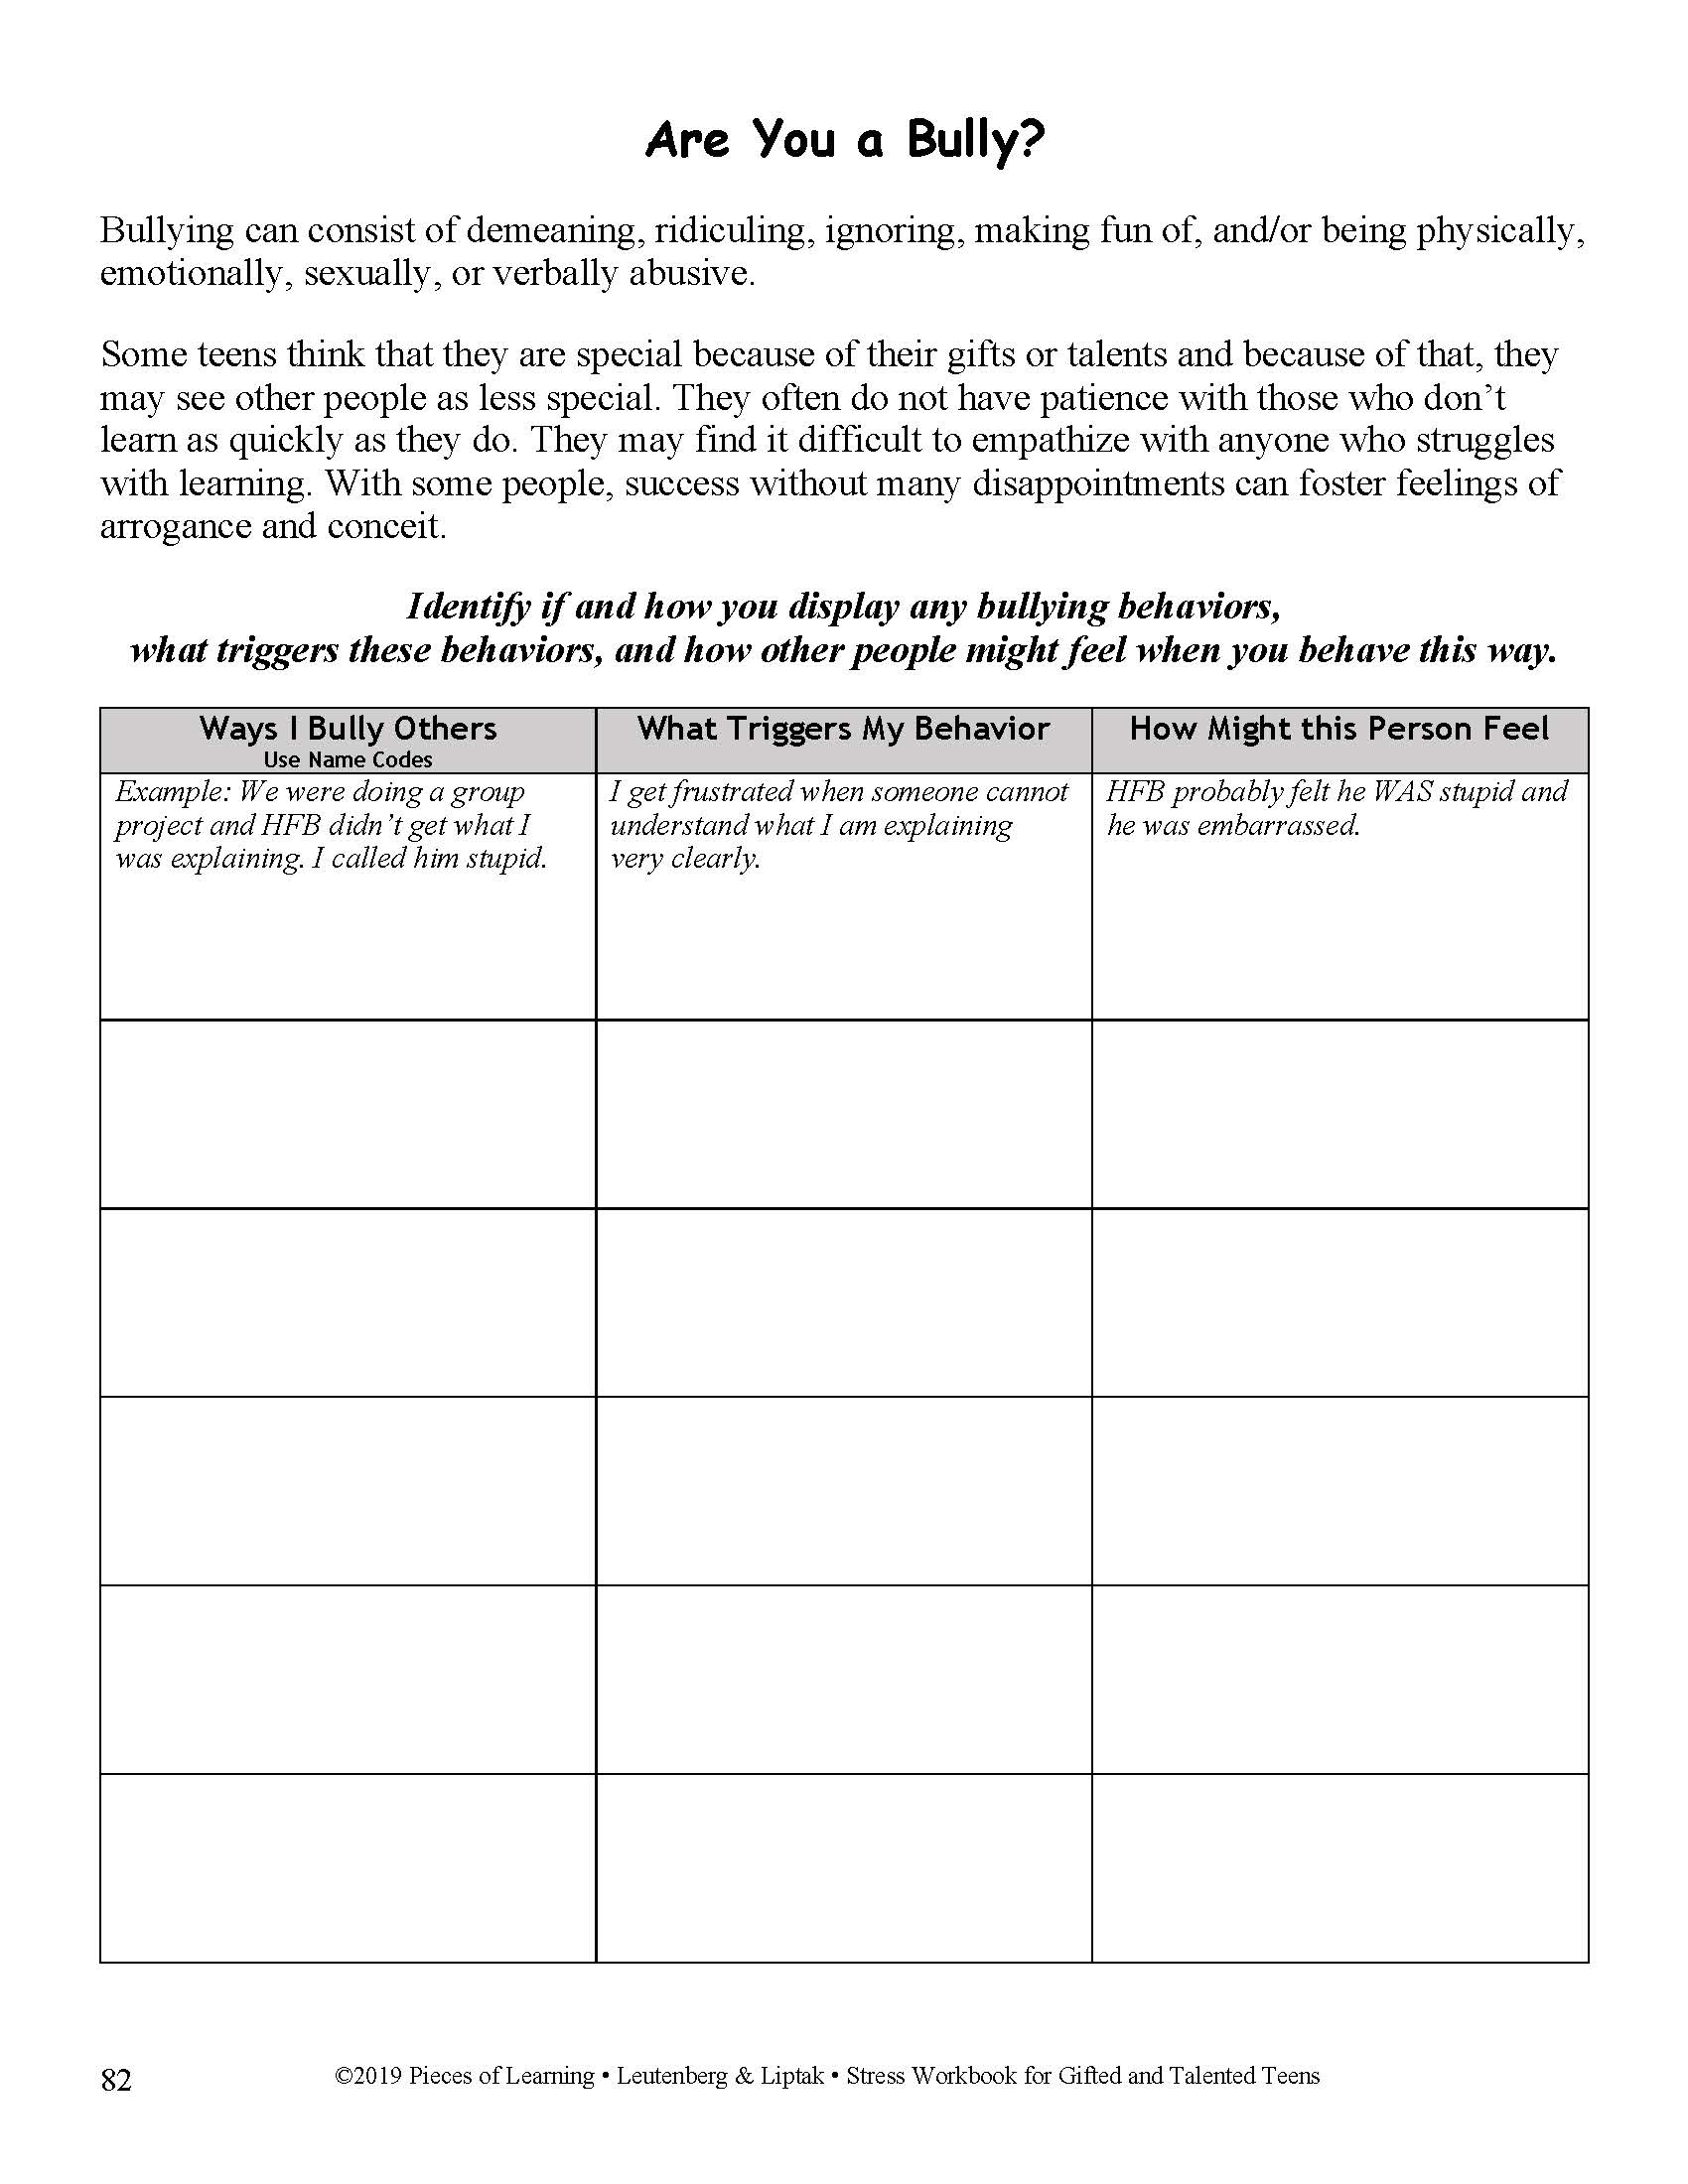 Stress Workbook For G T Teens Pieces Of Learning